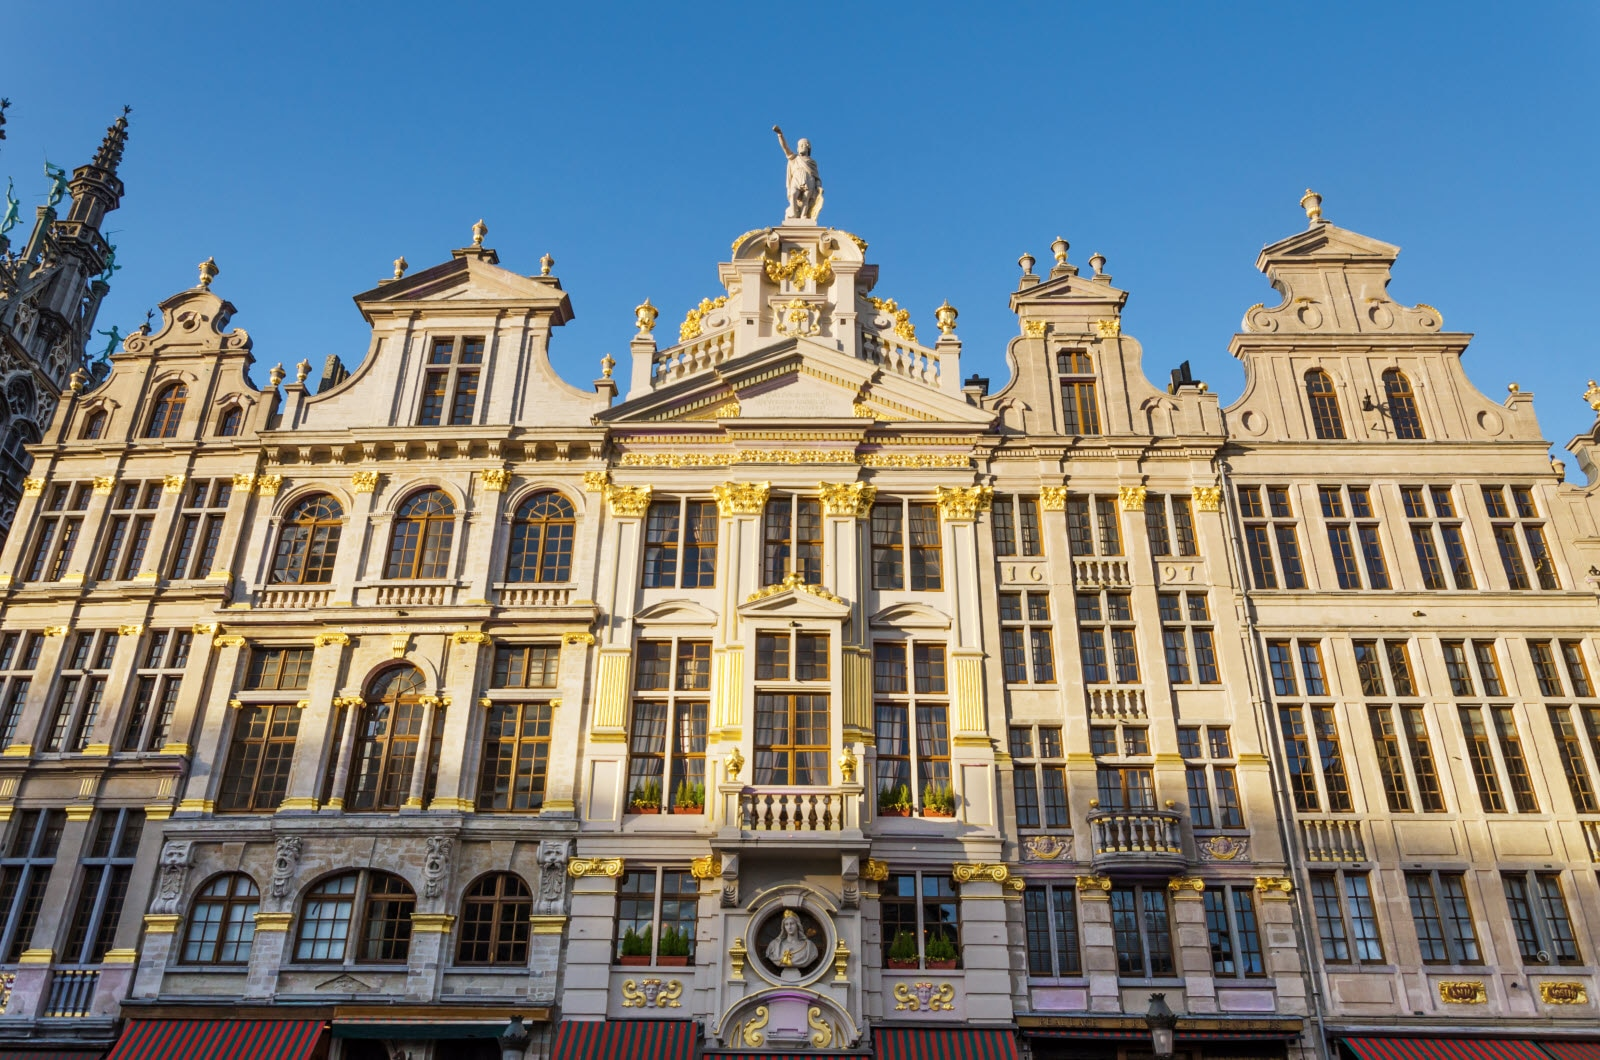 Belgium, Brussels, Grand Place. Mostphotos.com